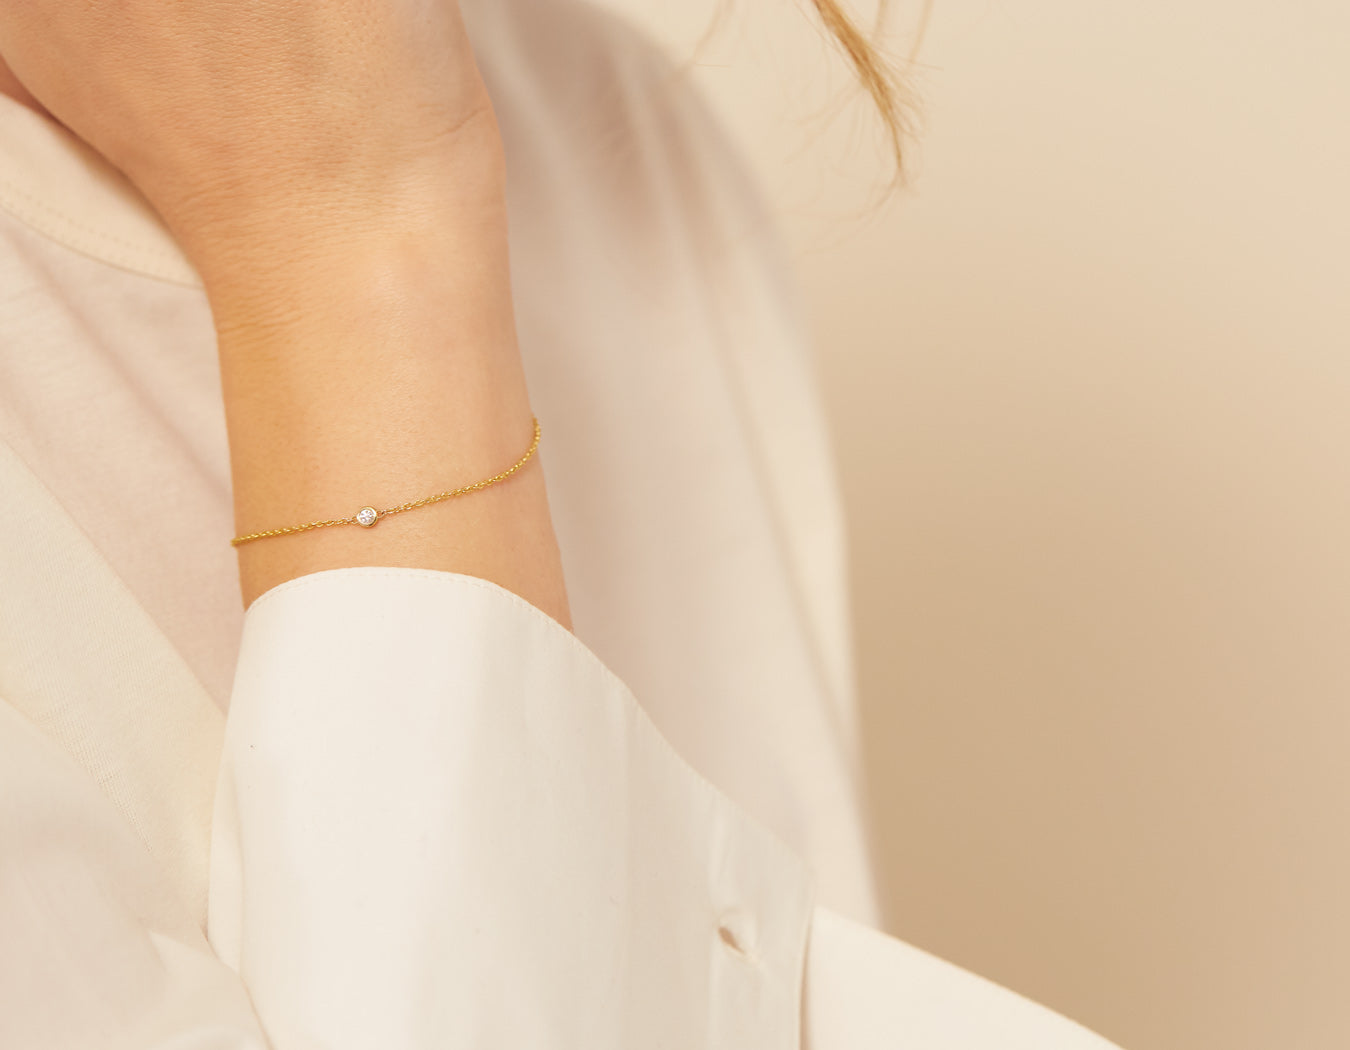 Model wearing simple classic Solitaire Bracelet delicate chain lobster clasp 14k yellow gold .04 ct round diamond Vrai & Oro, 14K Yellow Gold